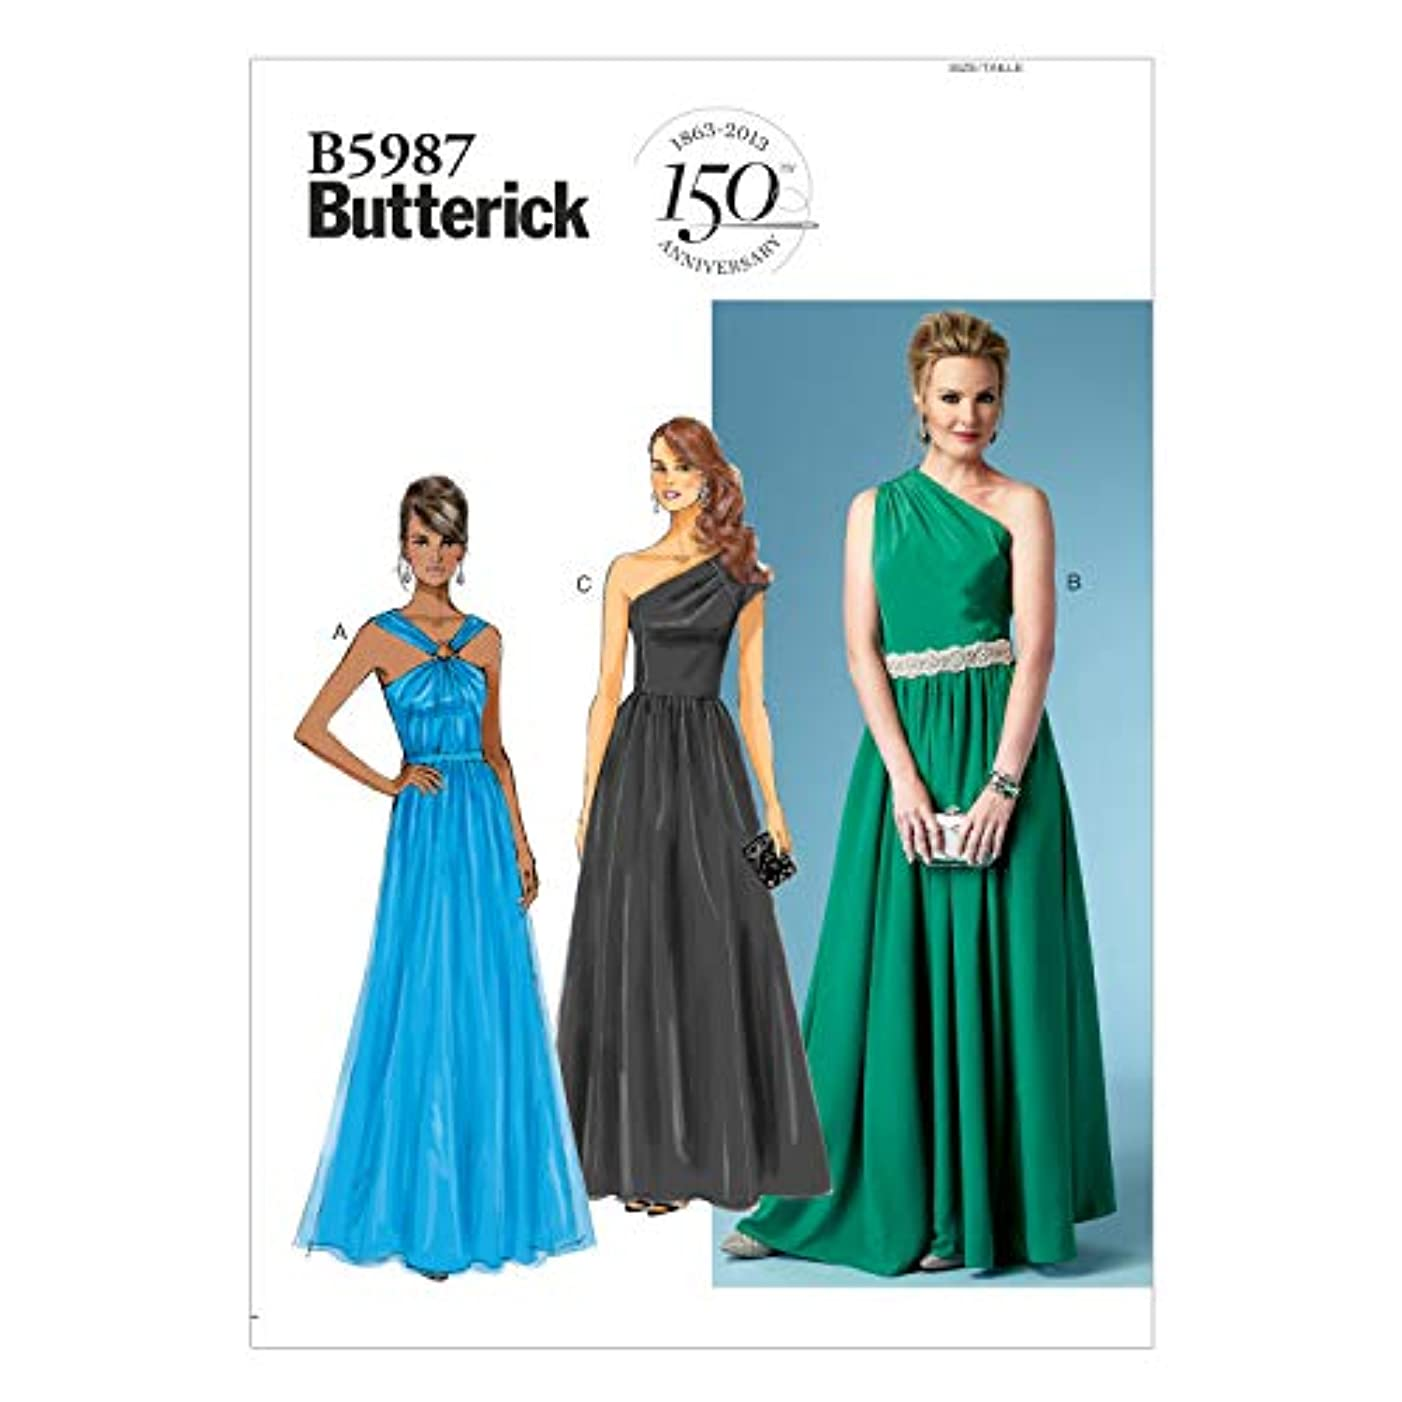 BUTTERICK PATTERNS B5987 Misses' Dress Sewing Template, Size F5